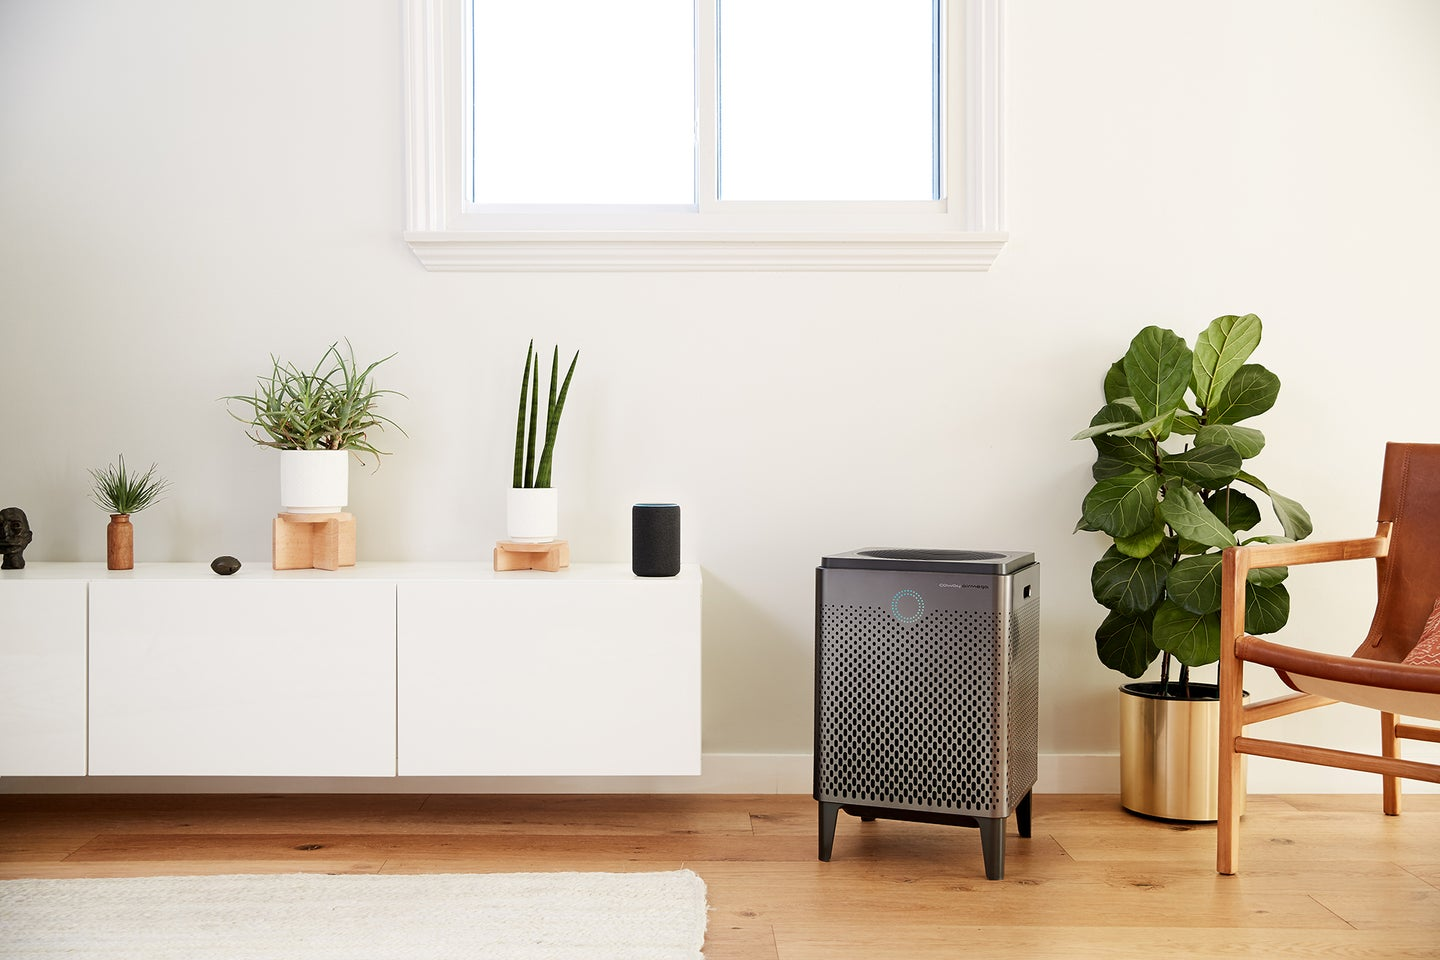 grey Coway air purifier in a living room with plants